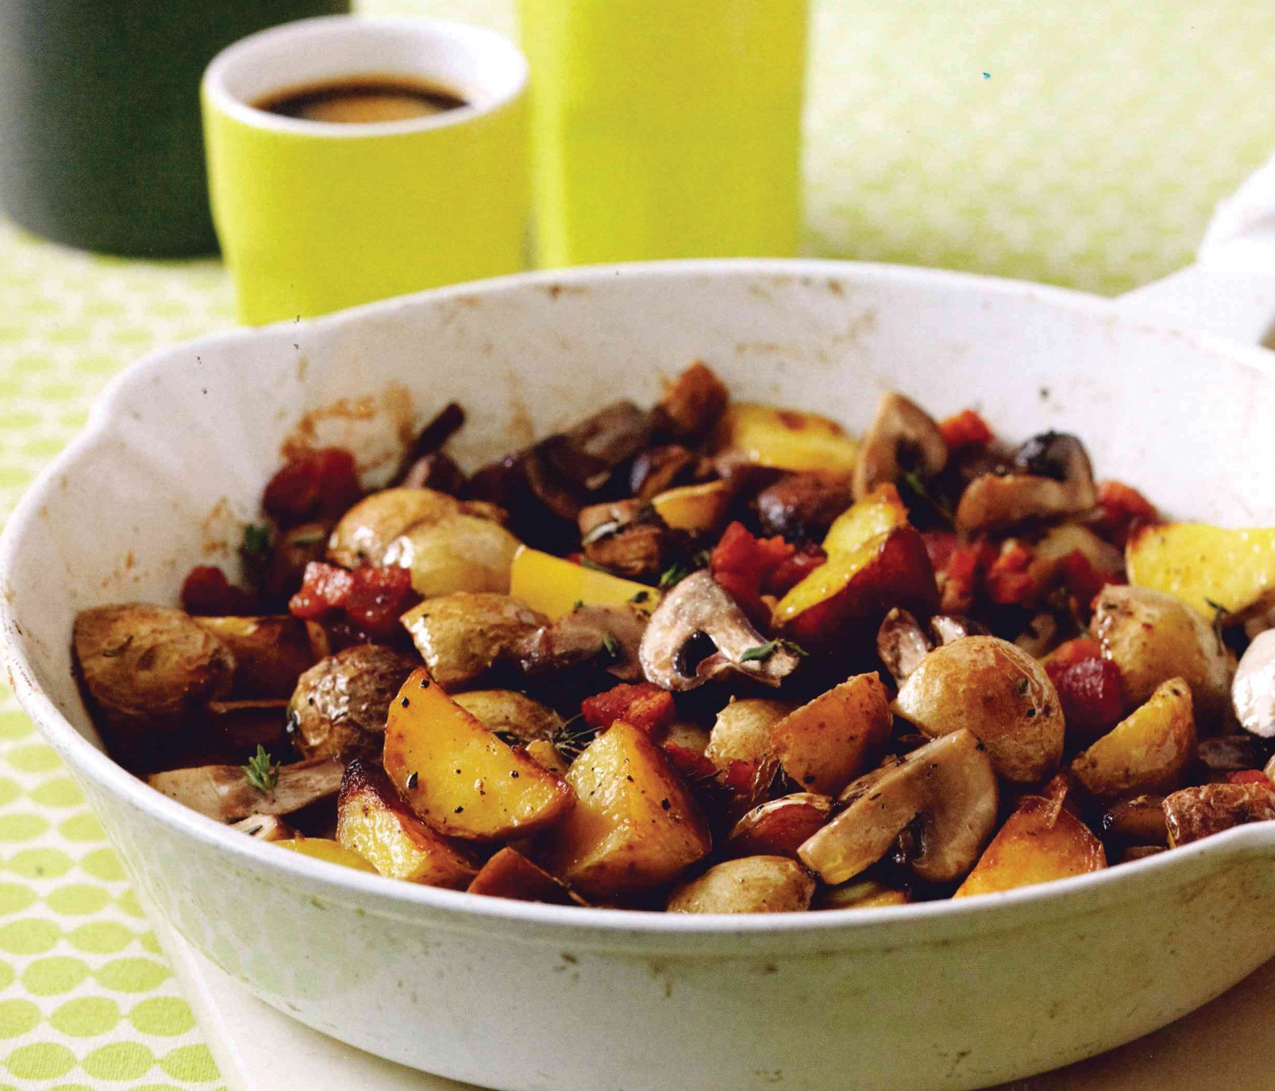 Skillet-Roasted Potatoes with Mushrooms and Pancetta